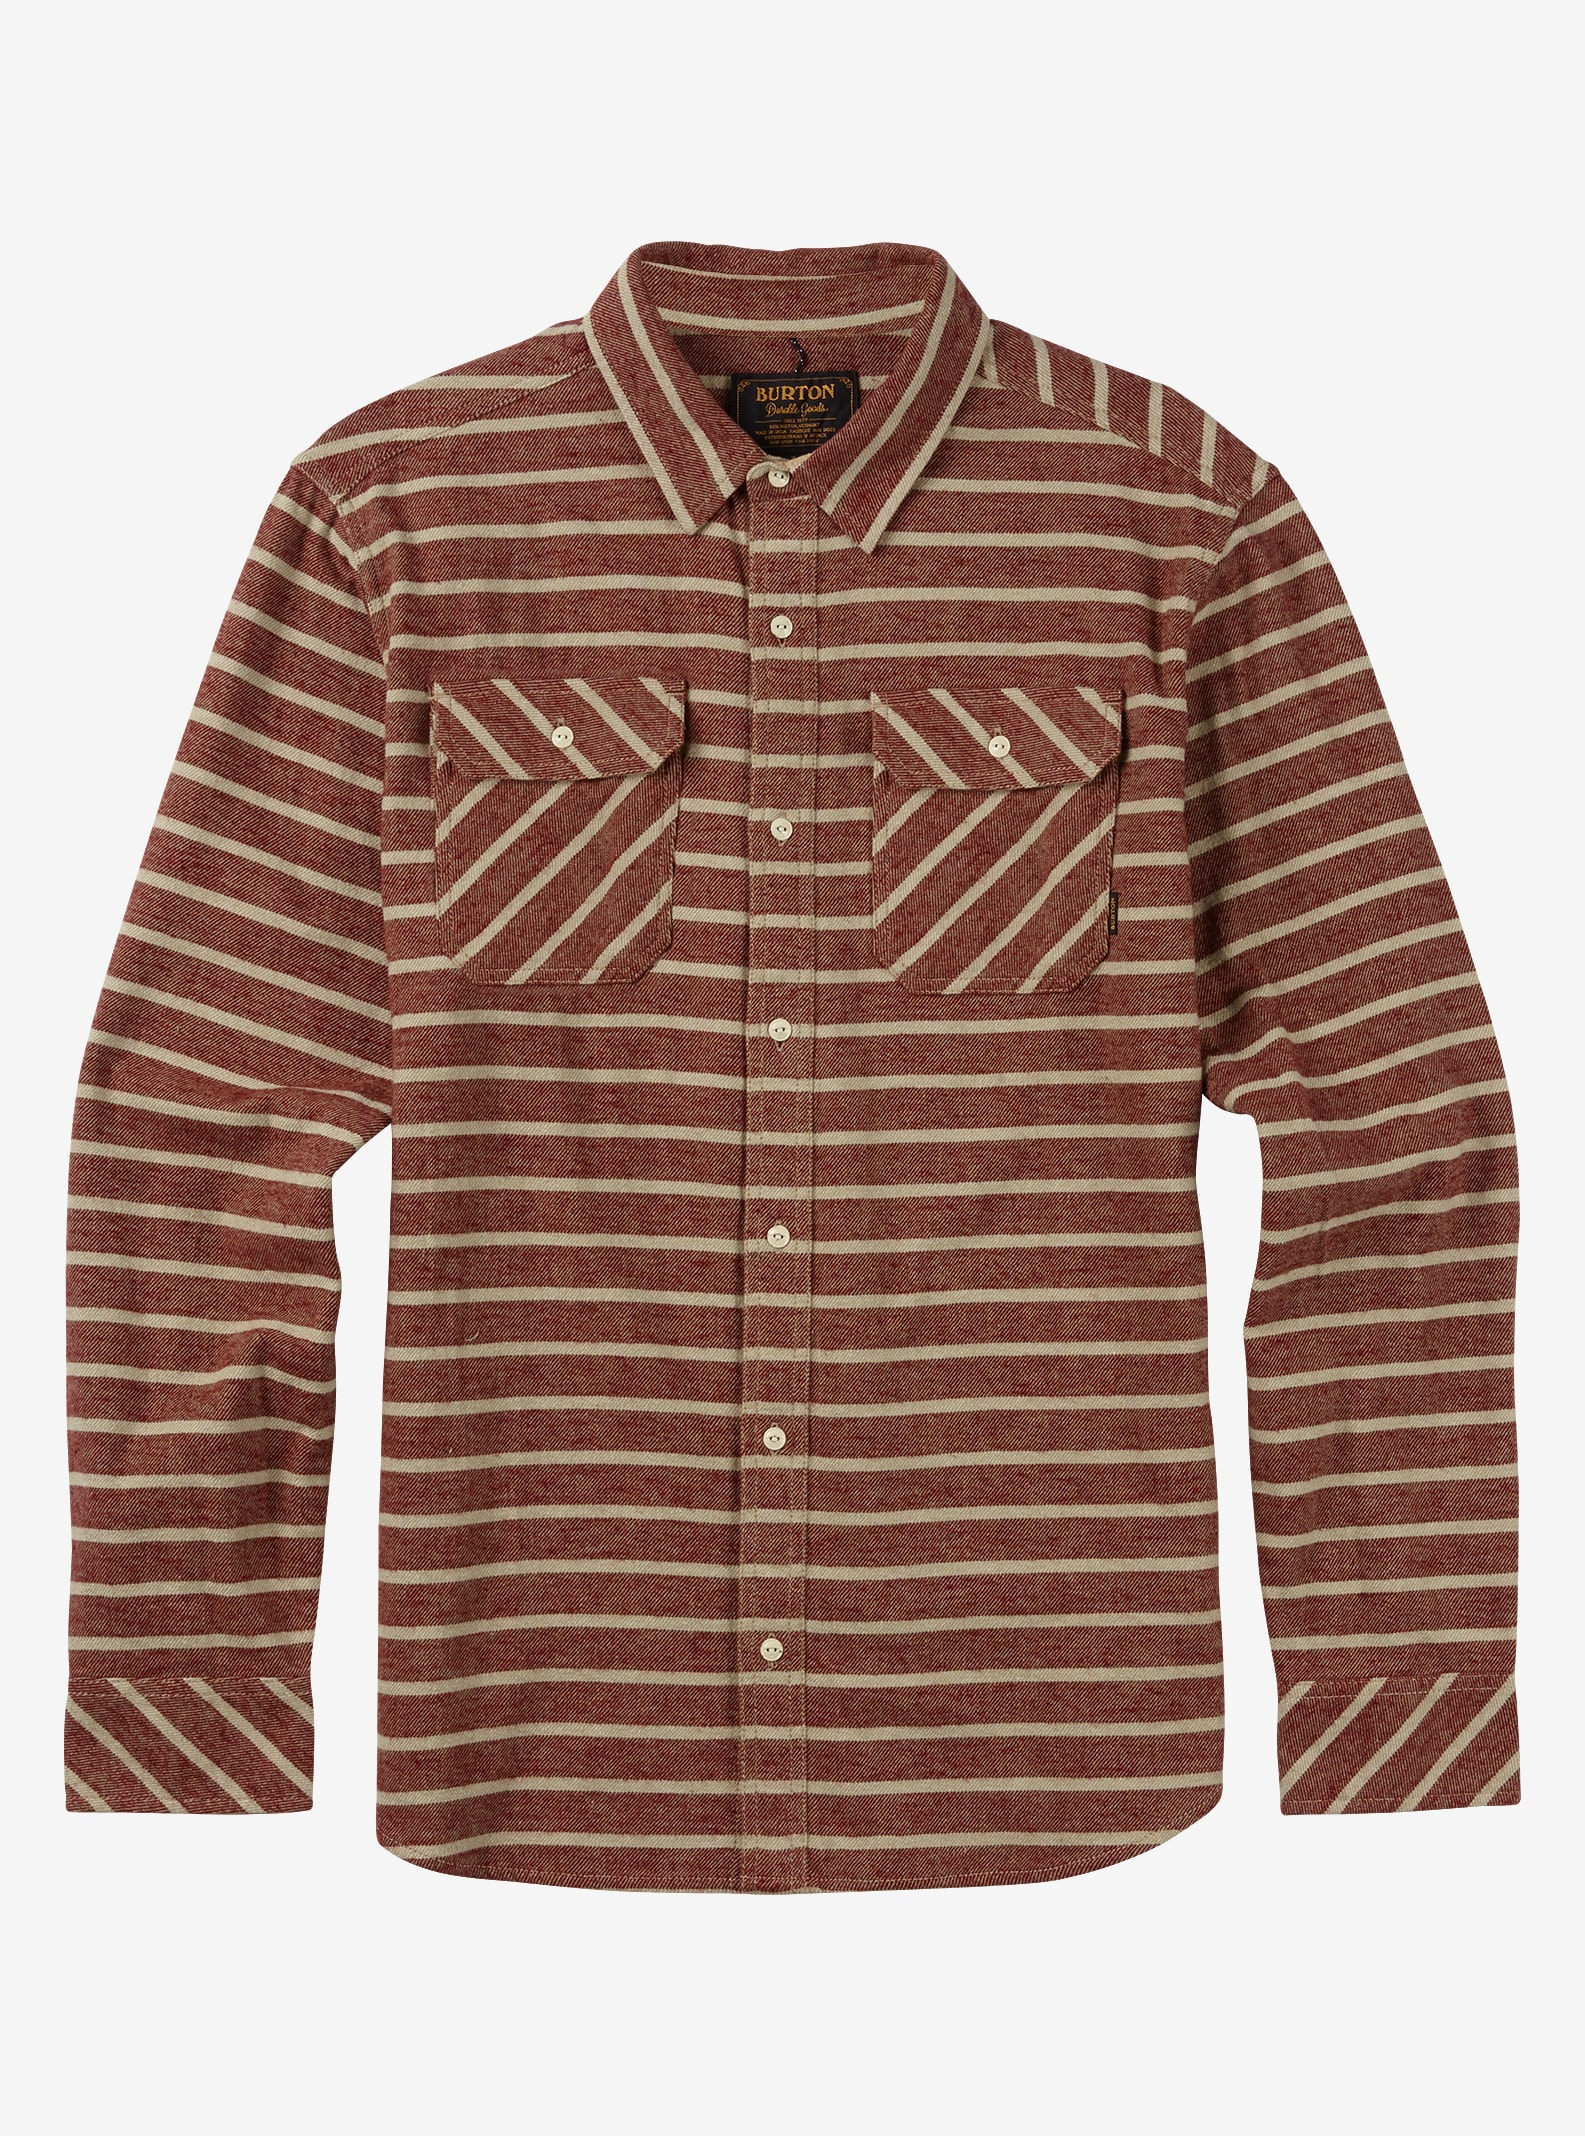 Burton Brighton Flannel shown in Rojo Dock Stripe